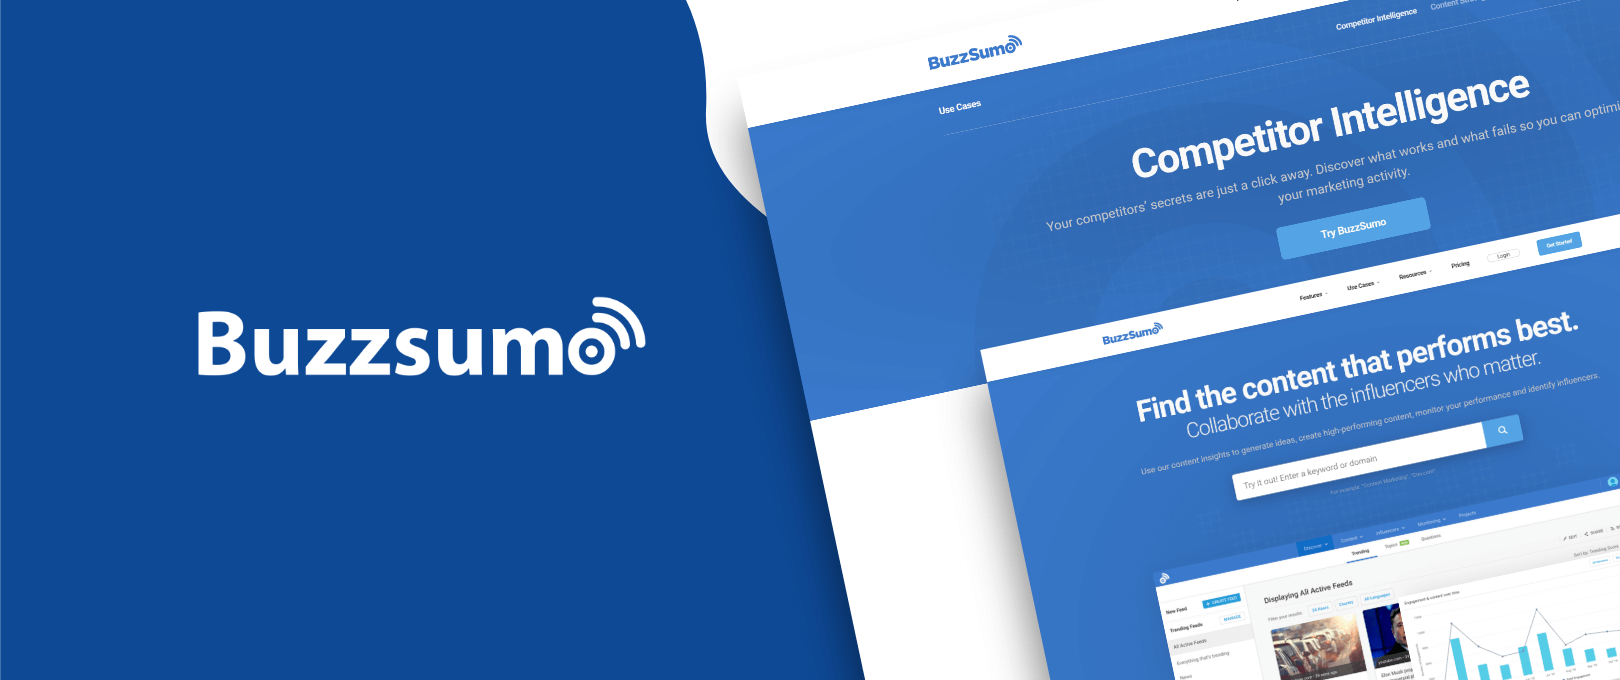 How-to-use-BuzzSumo-for-your-content-marketing-strat